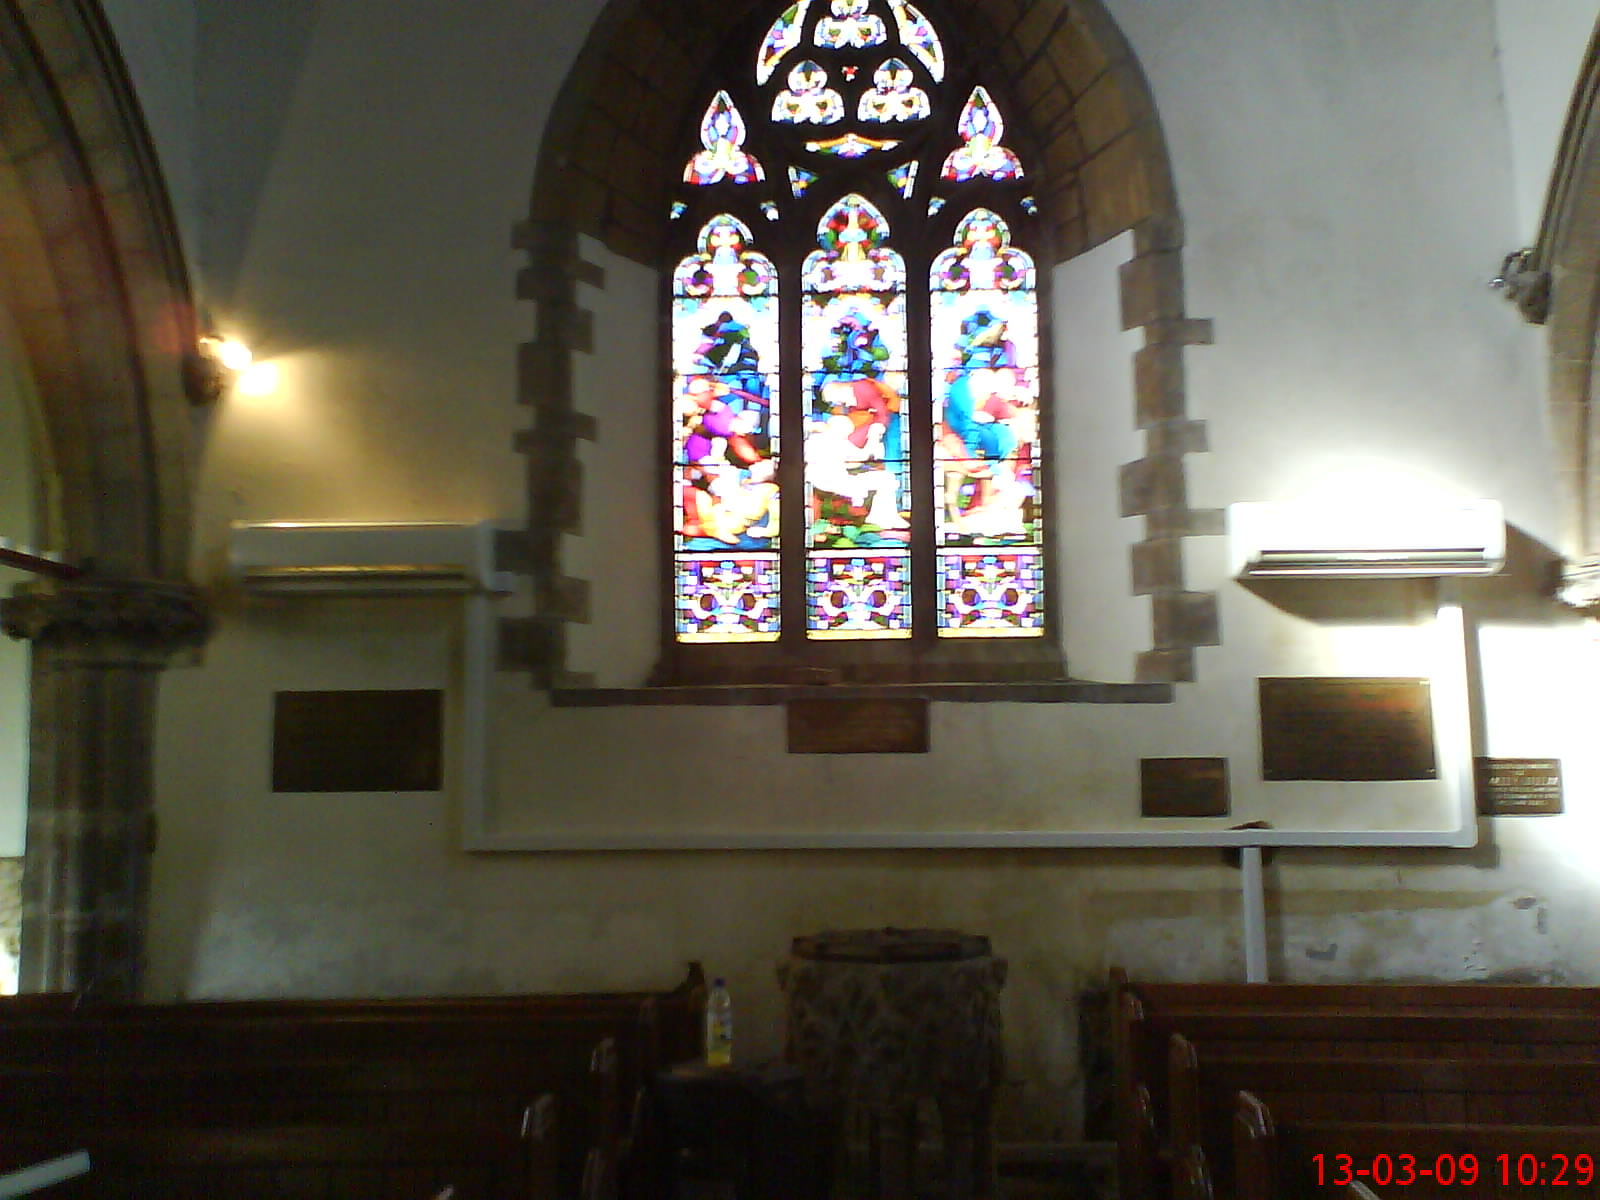 Air Conditioning Heat Pump Case Study Of All Saints Church